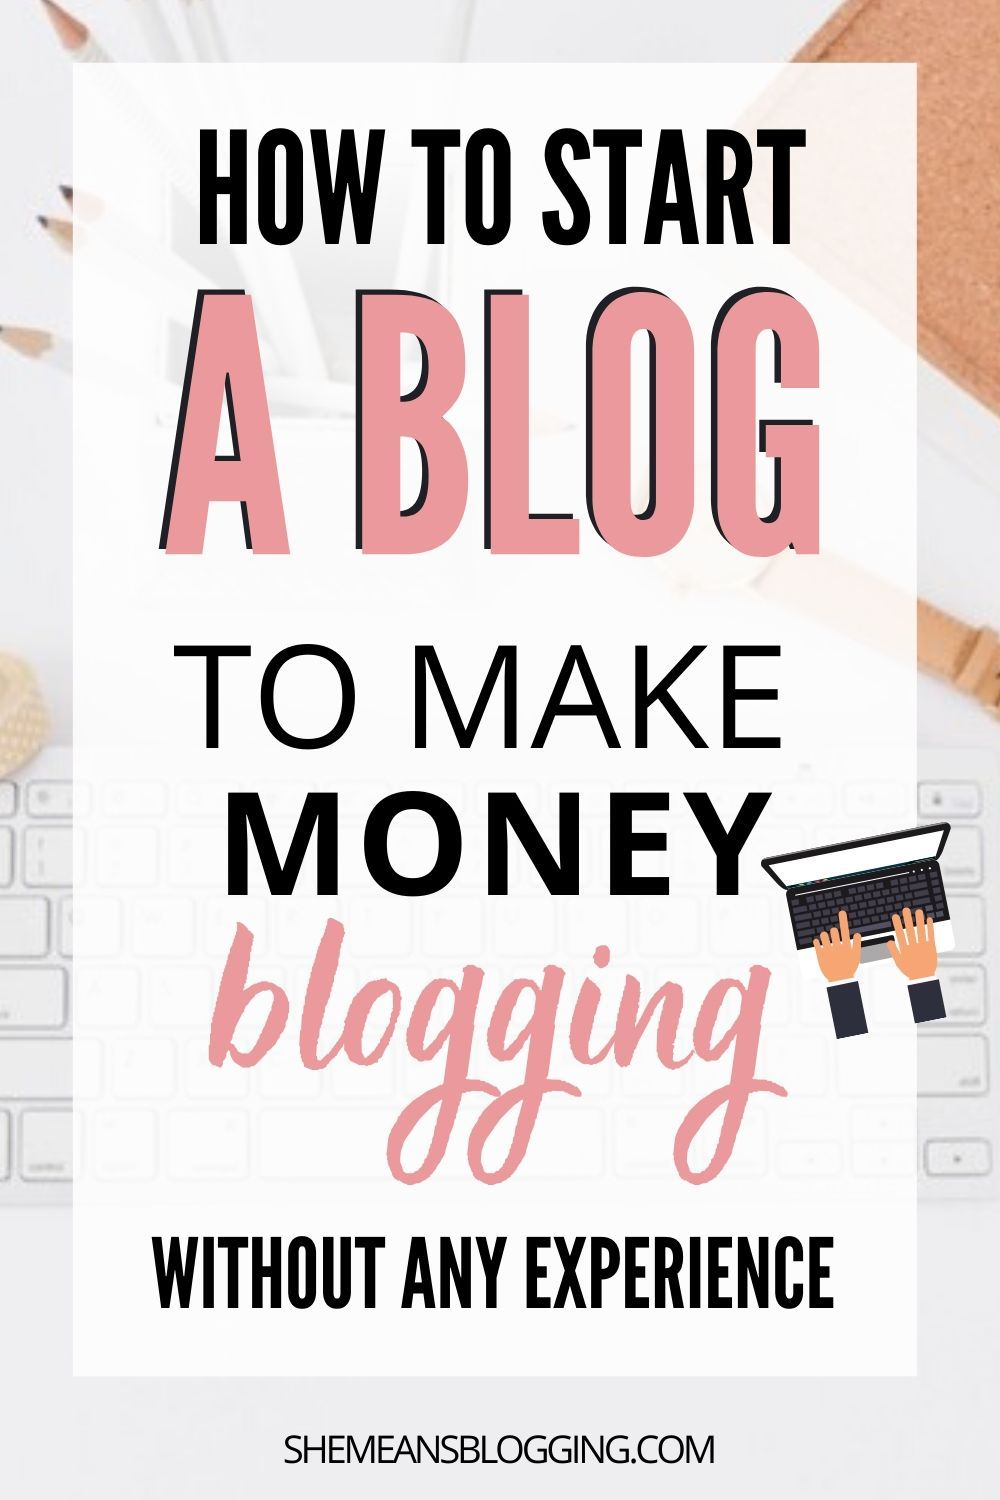 Follow This Step By Step Tutorial To Start A Blog To Make Money How To Start A Blog Make Money Blogging Money Blogging